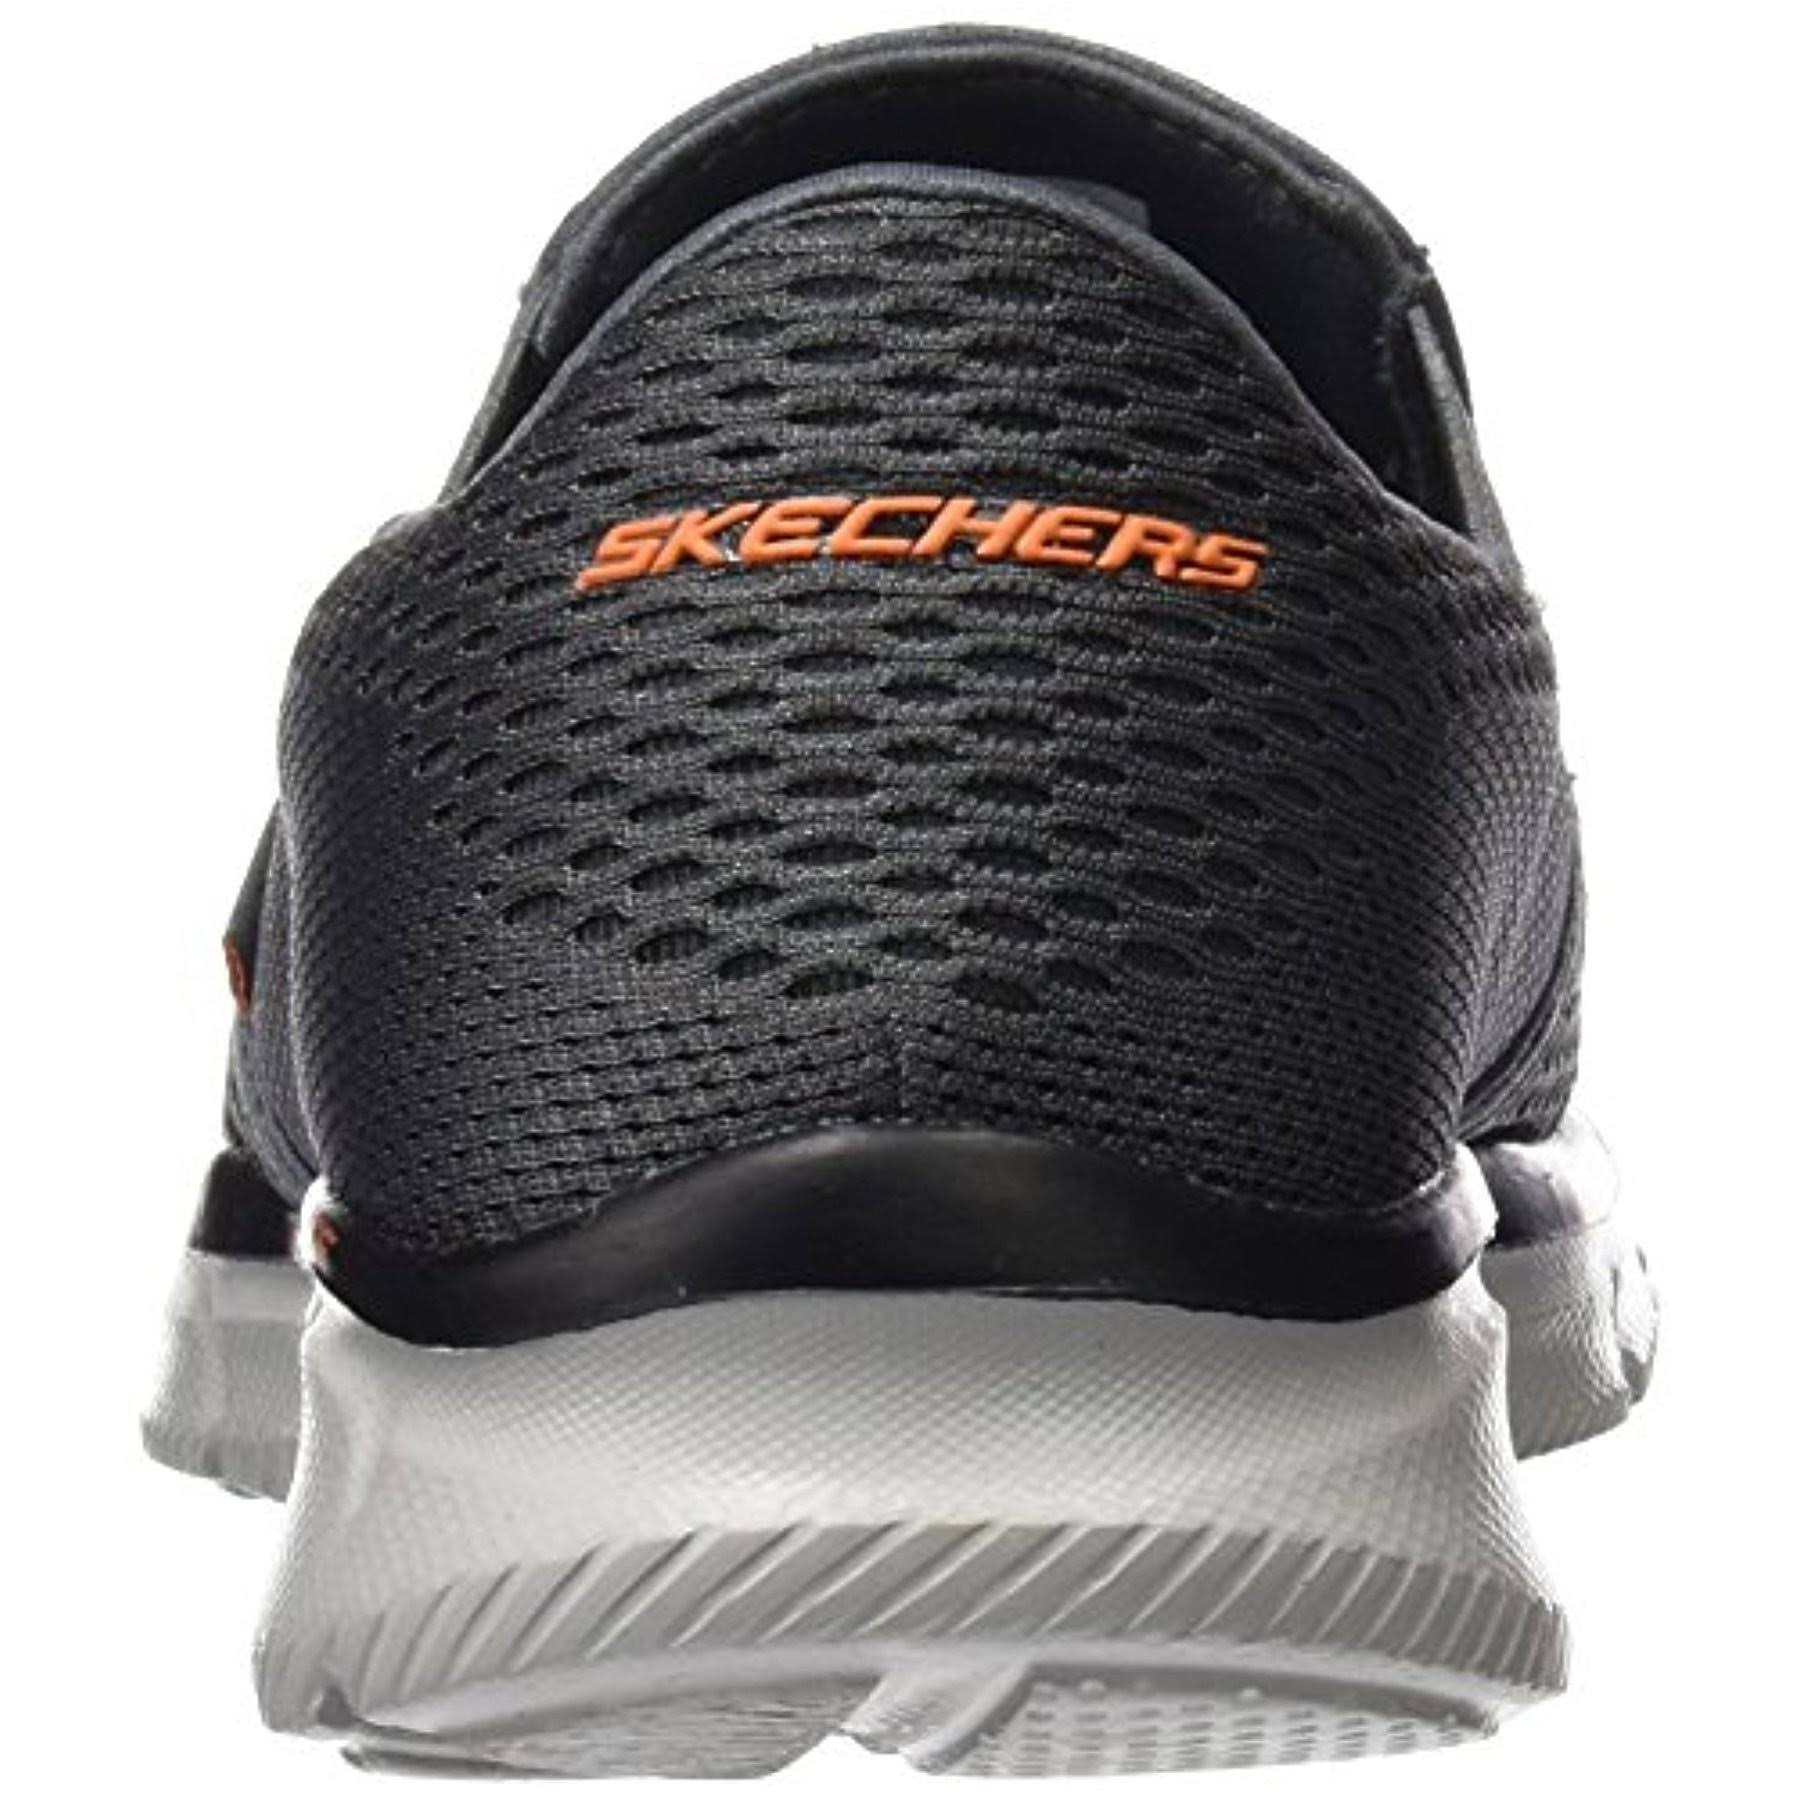 Equalizer OnGrigio Da Uomo Double Play AntraciteArancio Slip Skiders Bianco gIb7Yyf6v